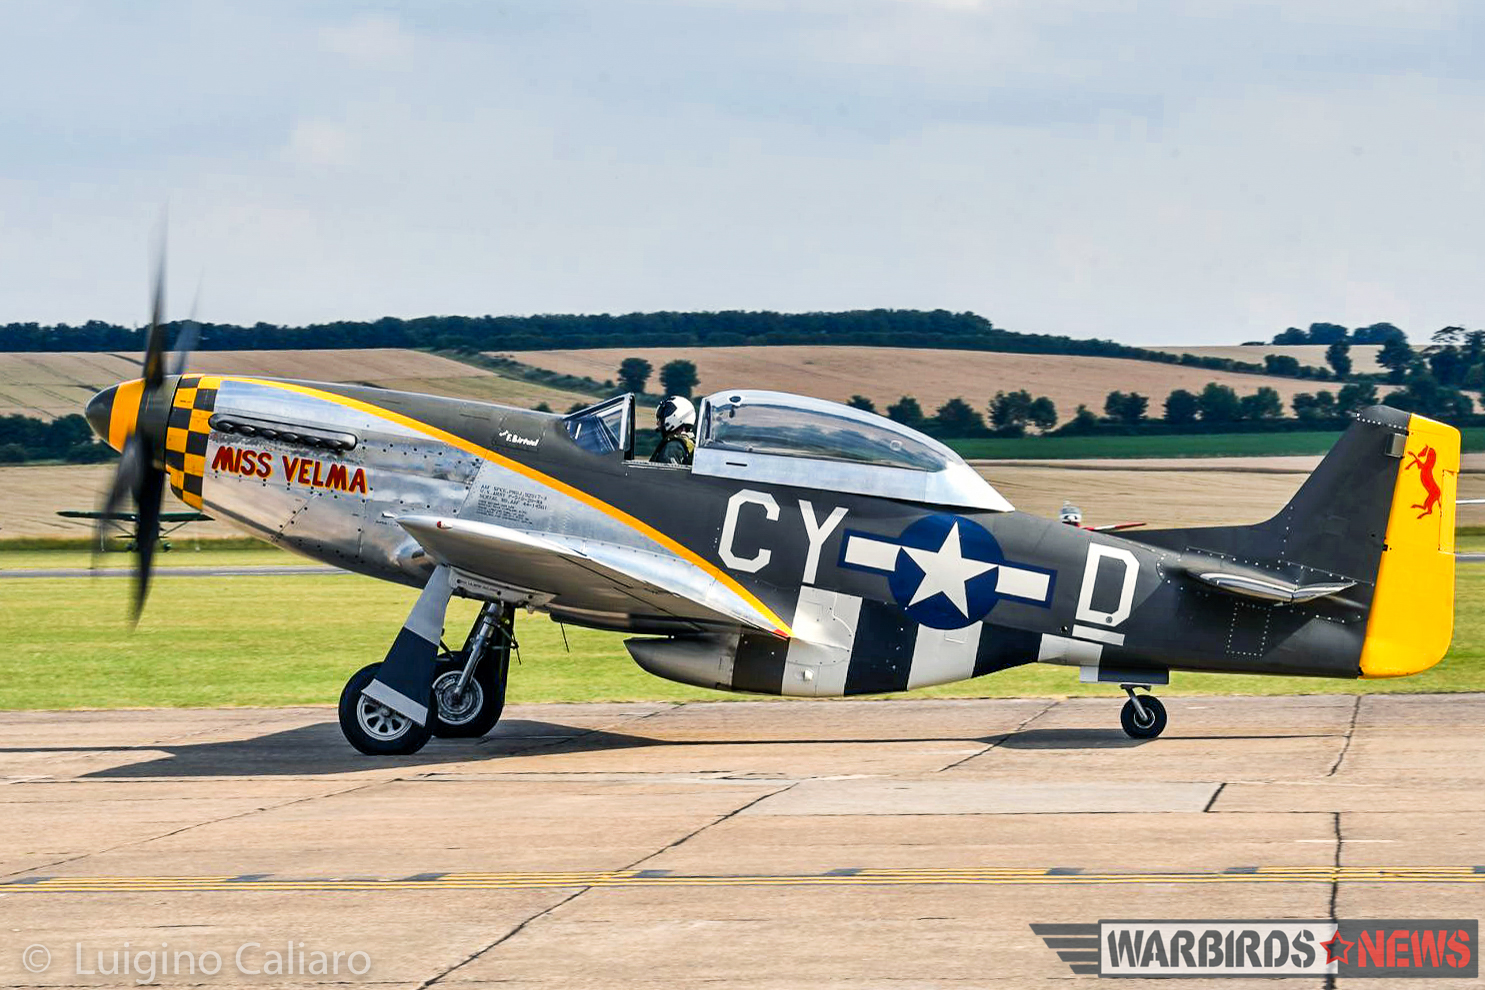 The ill-fated P-51D 'Miss Velma' taxies out for takeoff before the Balbo. As these words were written, the Mustang was already back at Duxford, on its gear, undergoing damage assessment. (photo by Luigino Caliaro)